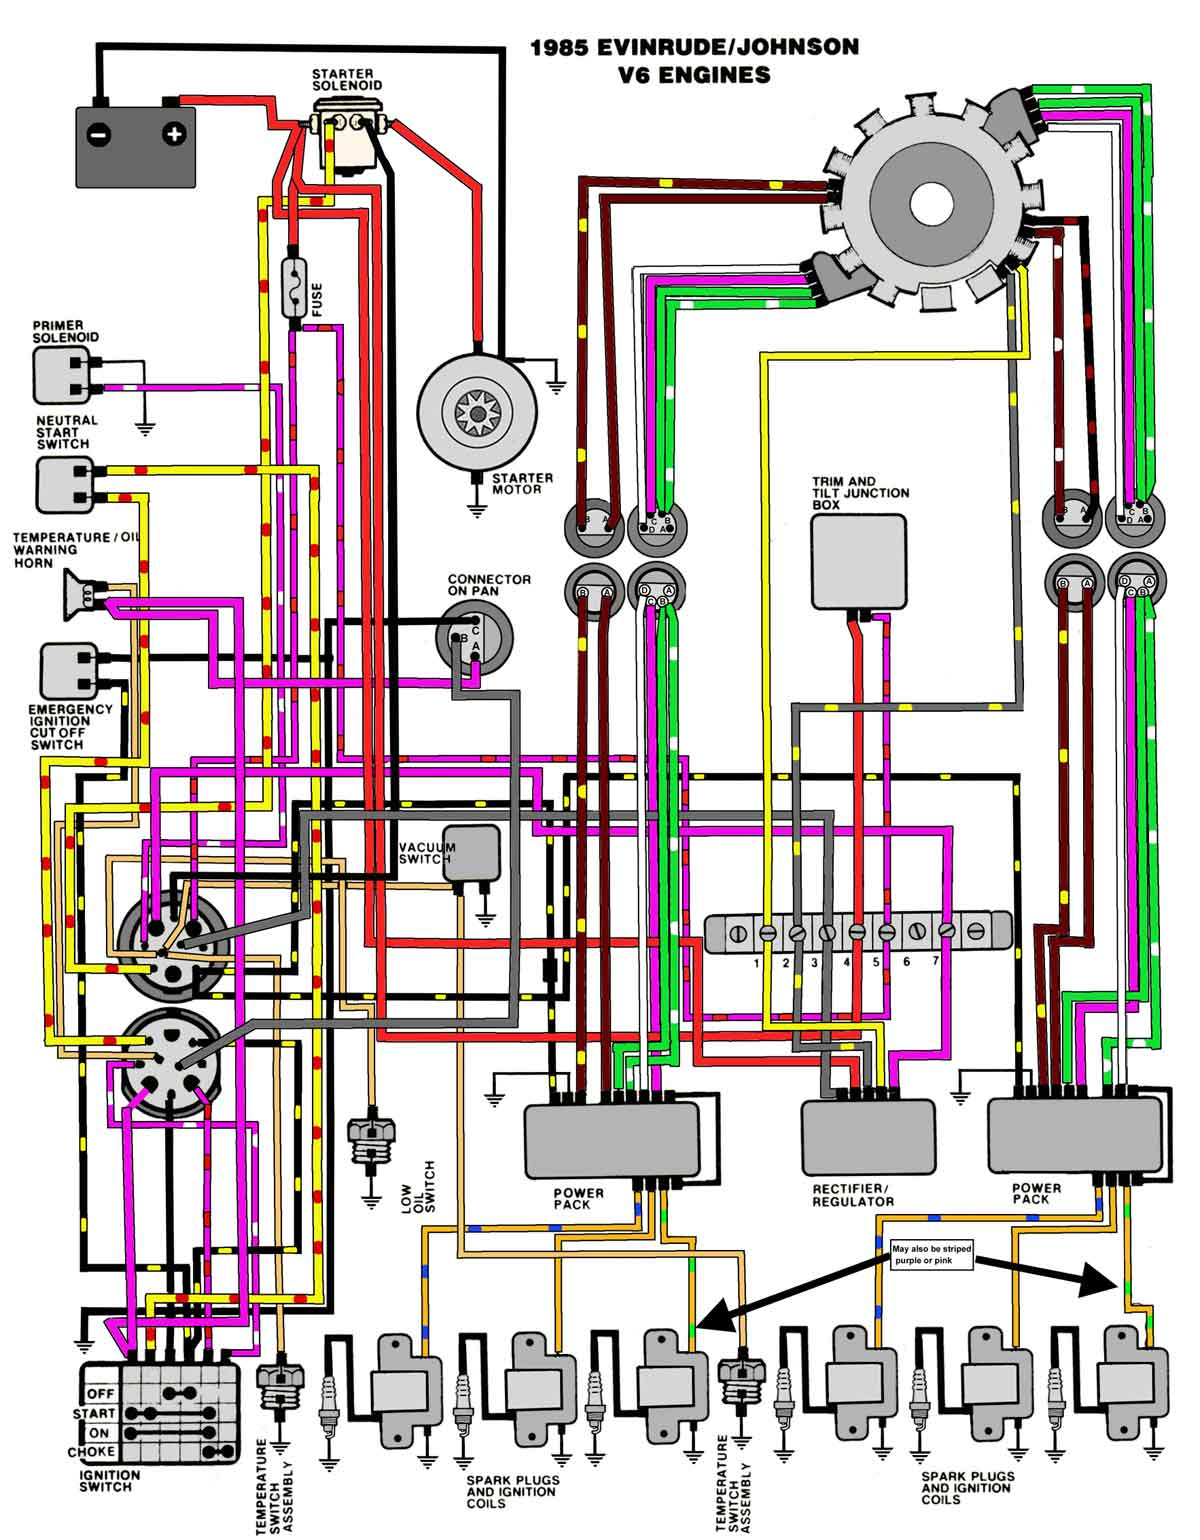 85_V6 mastertech marine evinrude johnson outboard wiring diagrams 70 HP Johnson Ignition Wiring at bakdesigns.co